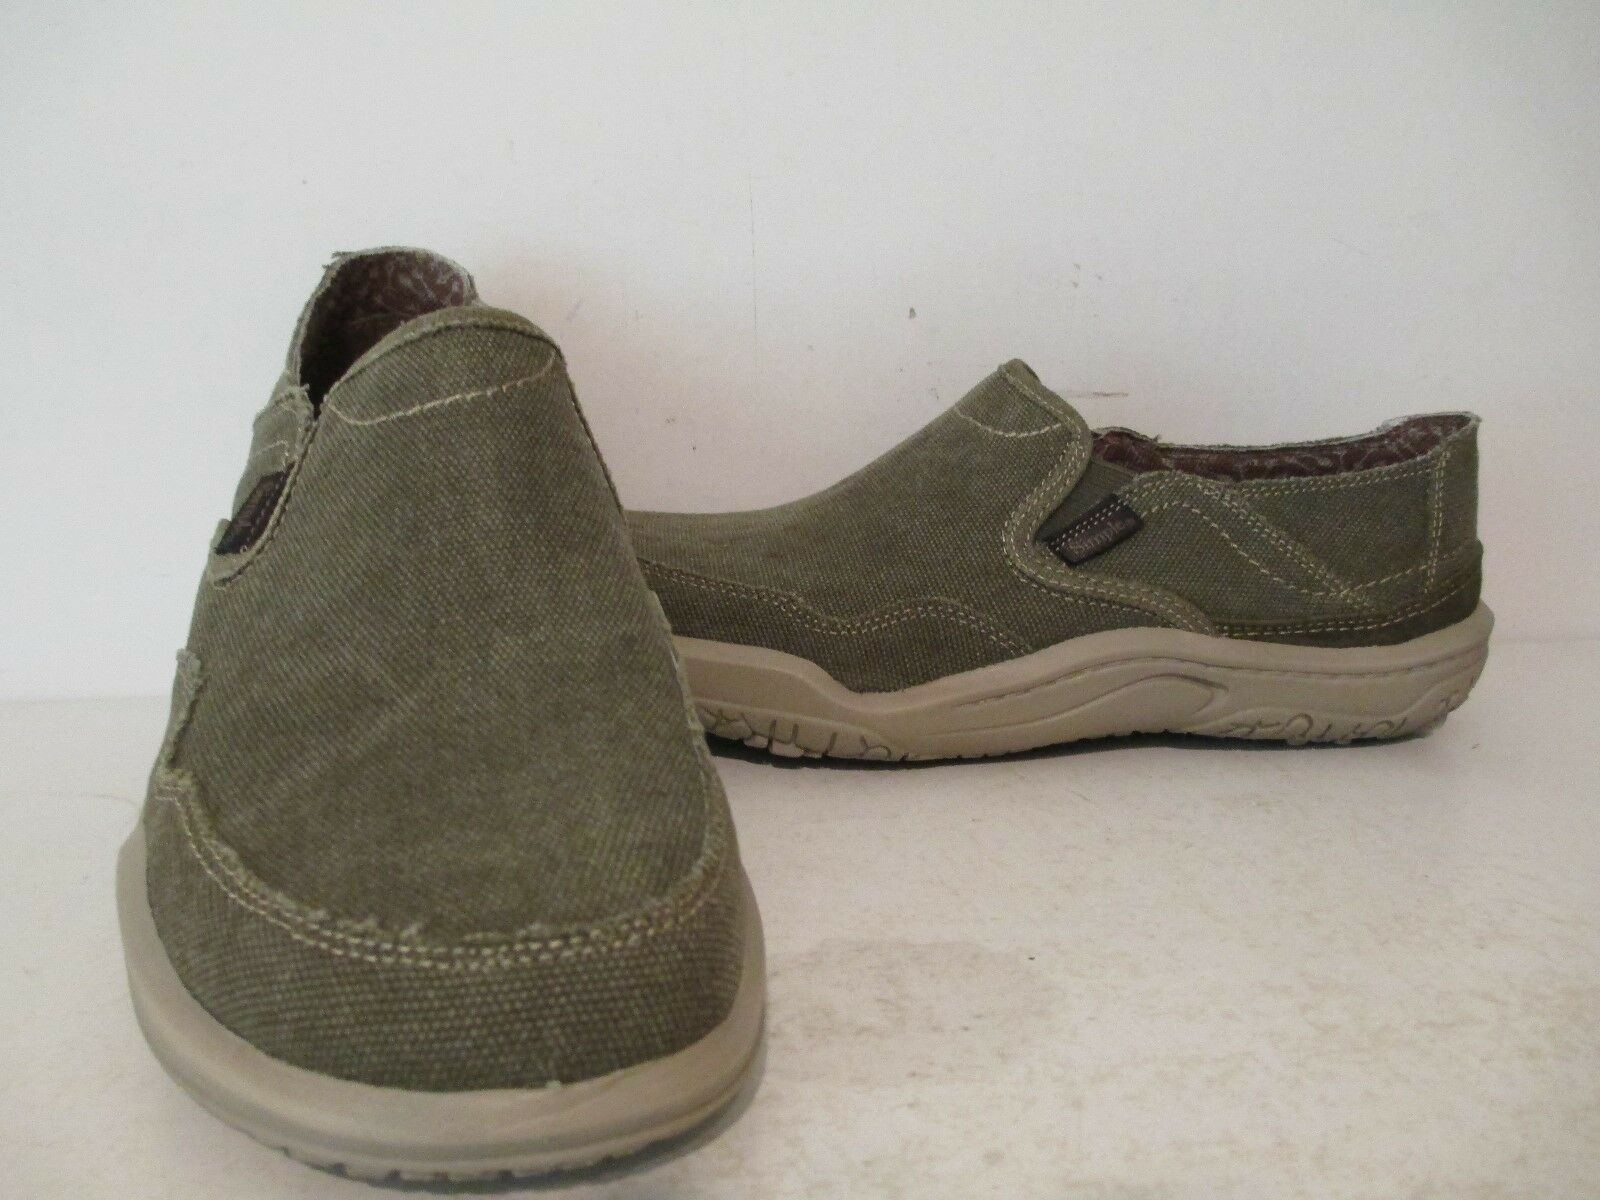 25f5f0c90c19 Simple Mens Fabric Casual Slip On Loafers Olive Sizes 8 9.5 13 M Canvas  Centric nrmxfs5819-Casual Shoes